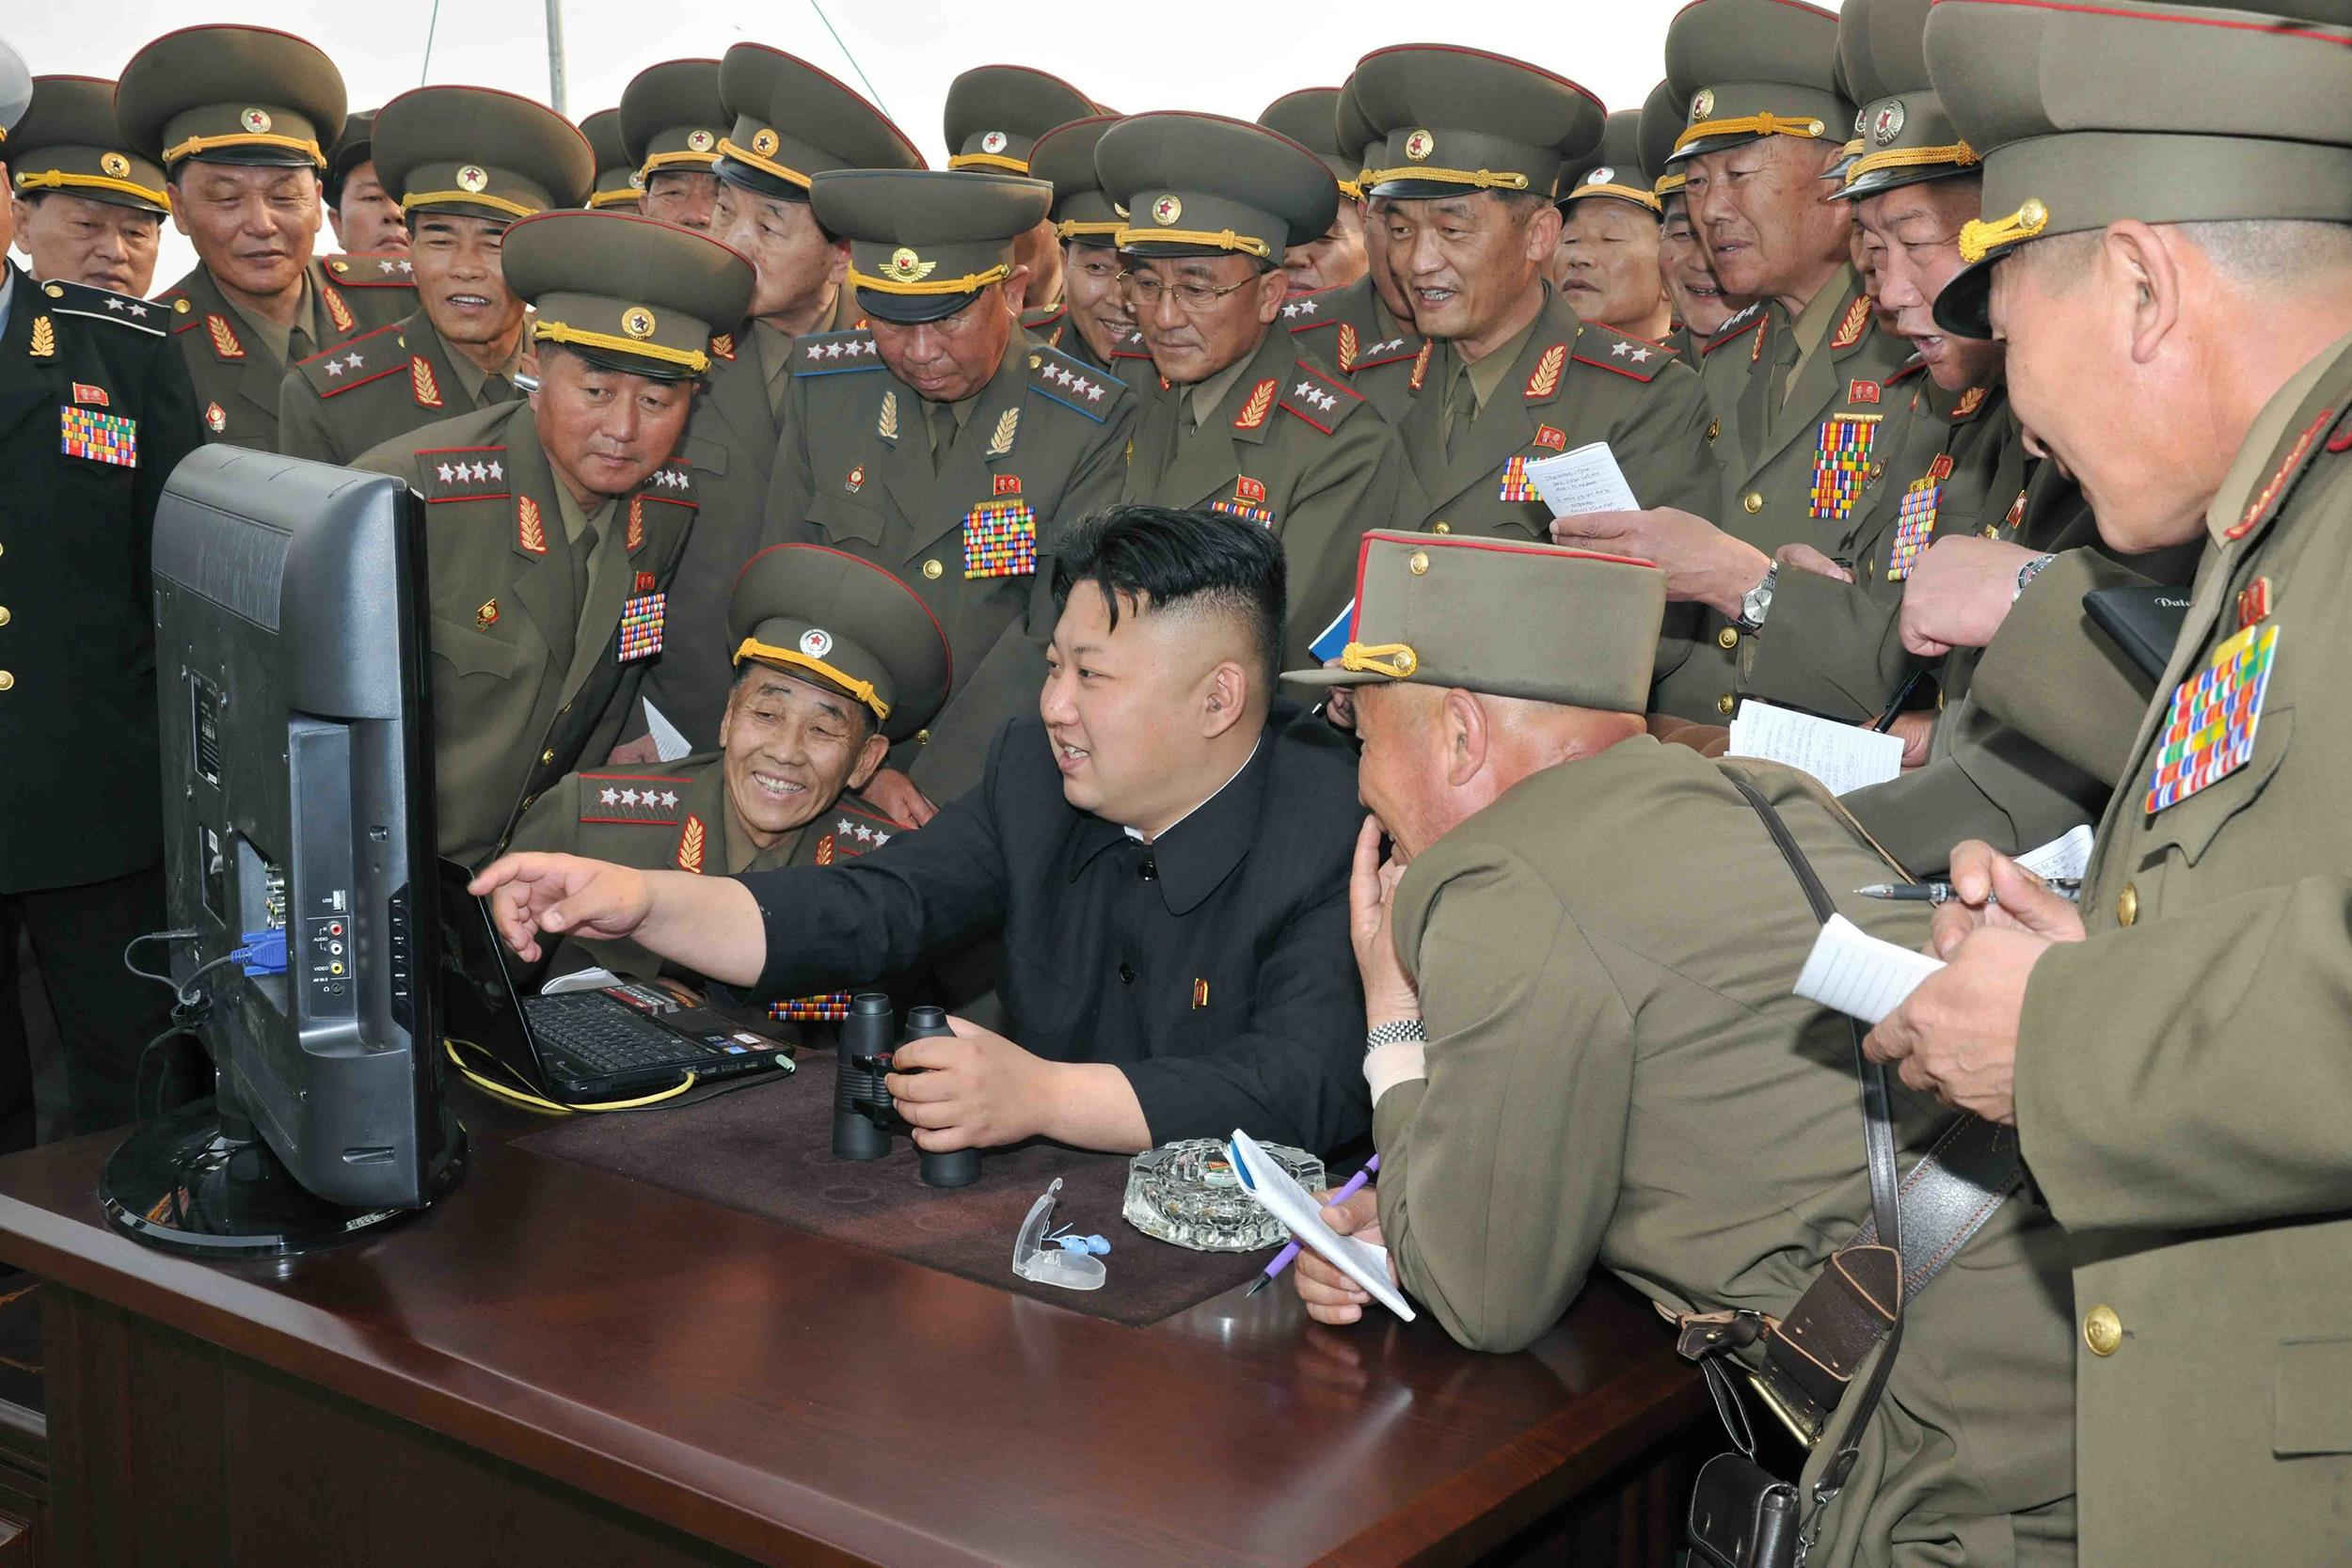 North Korea Back Online After Widespread Internet Outage - NBC.